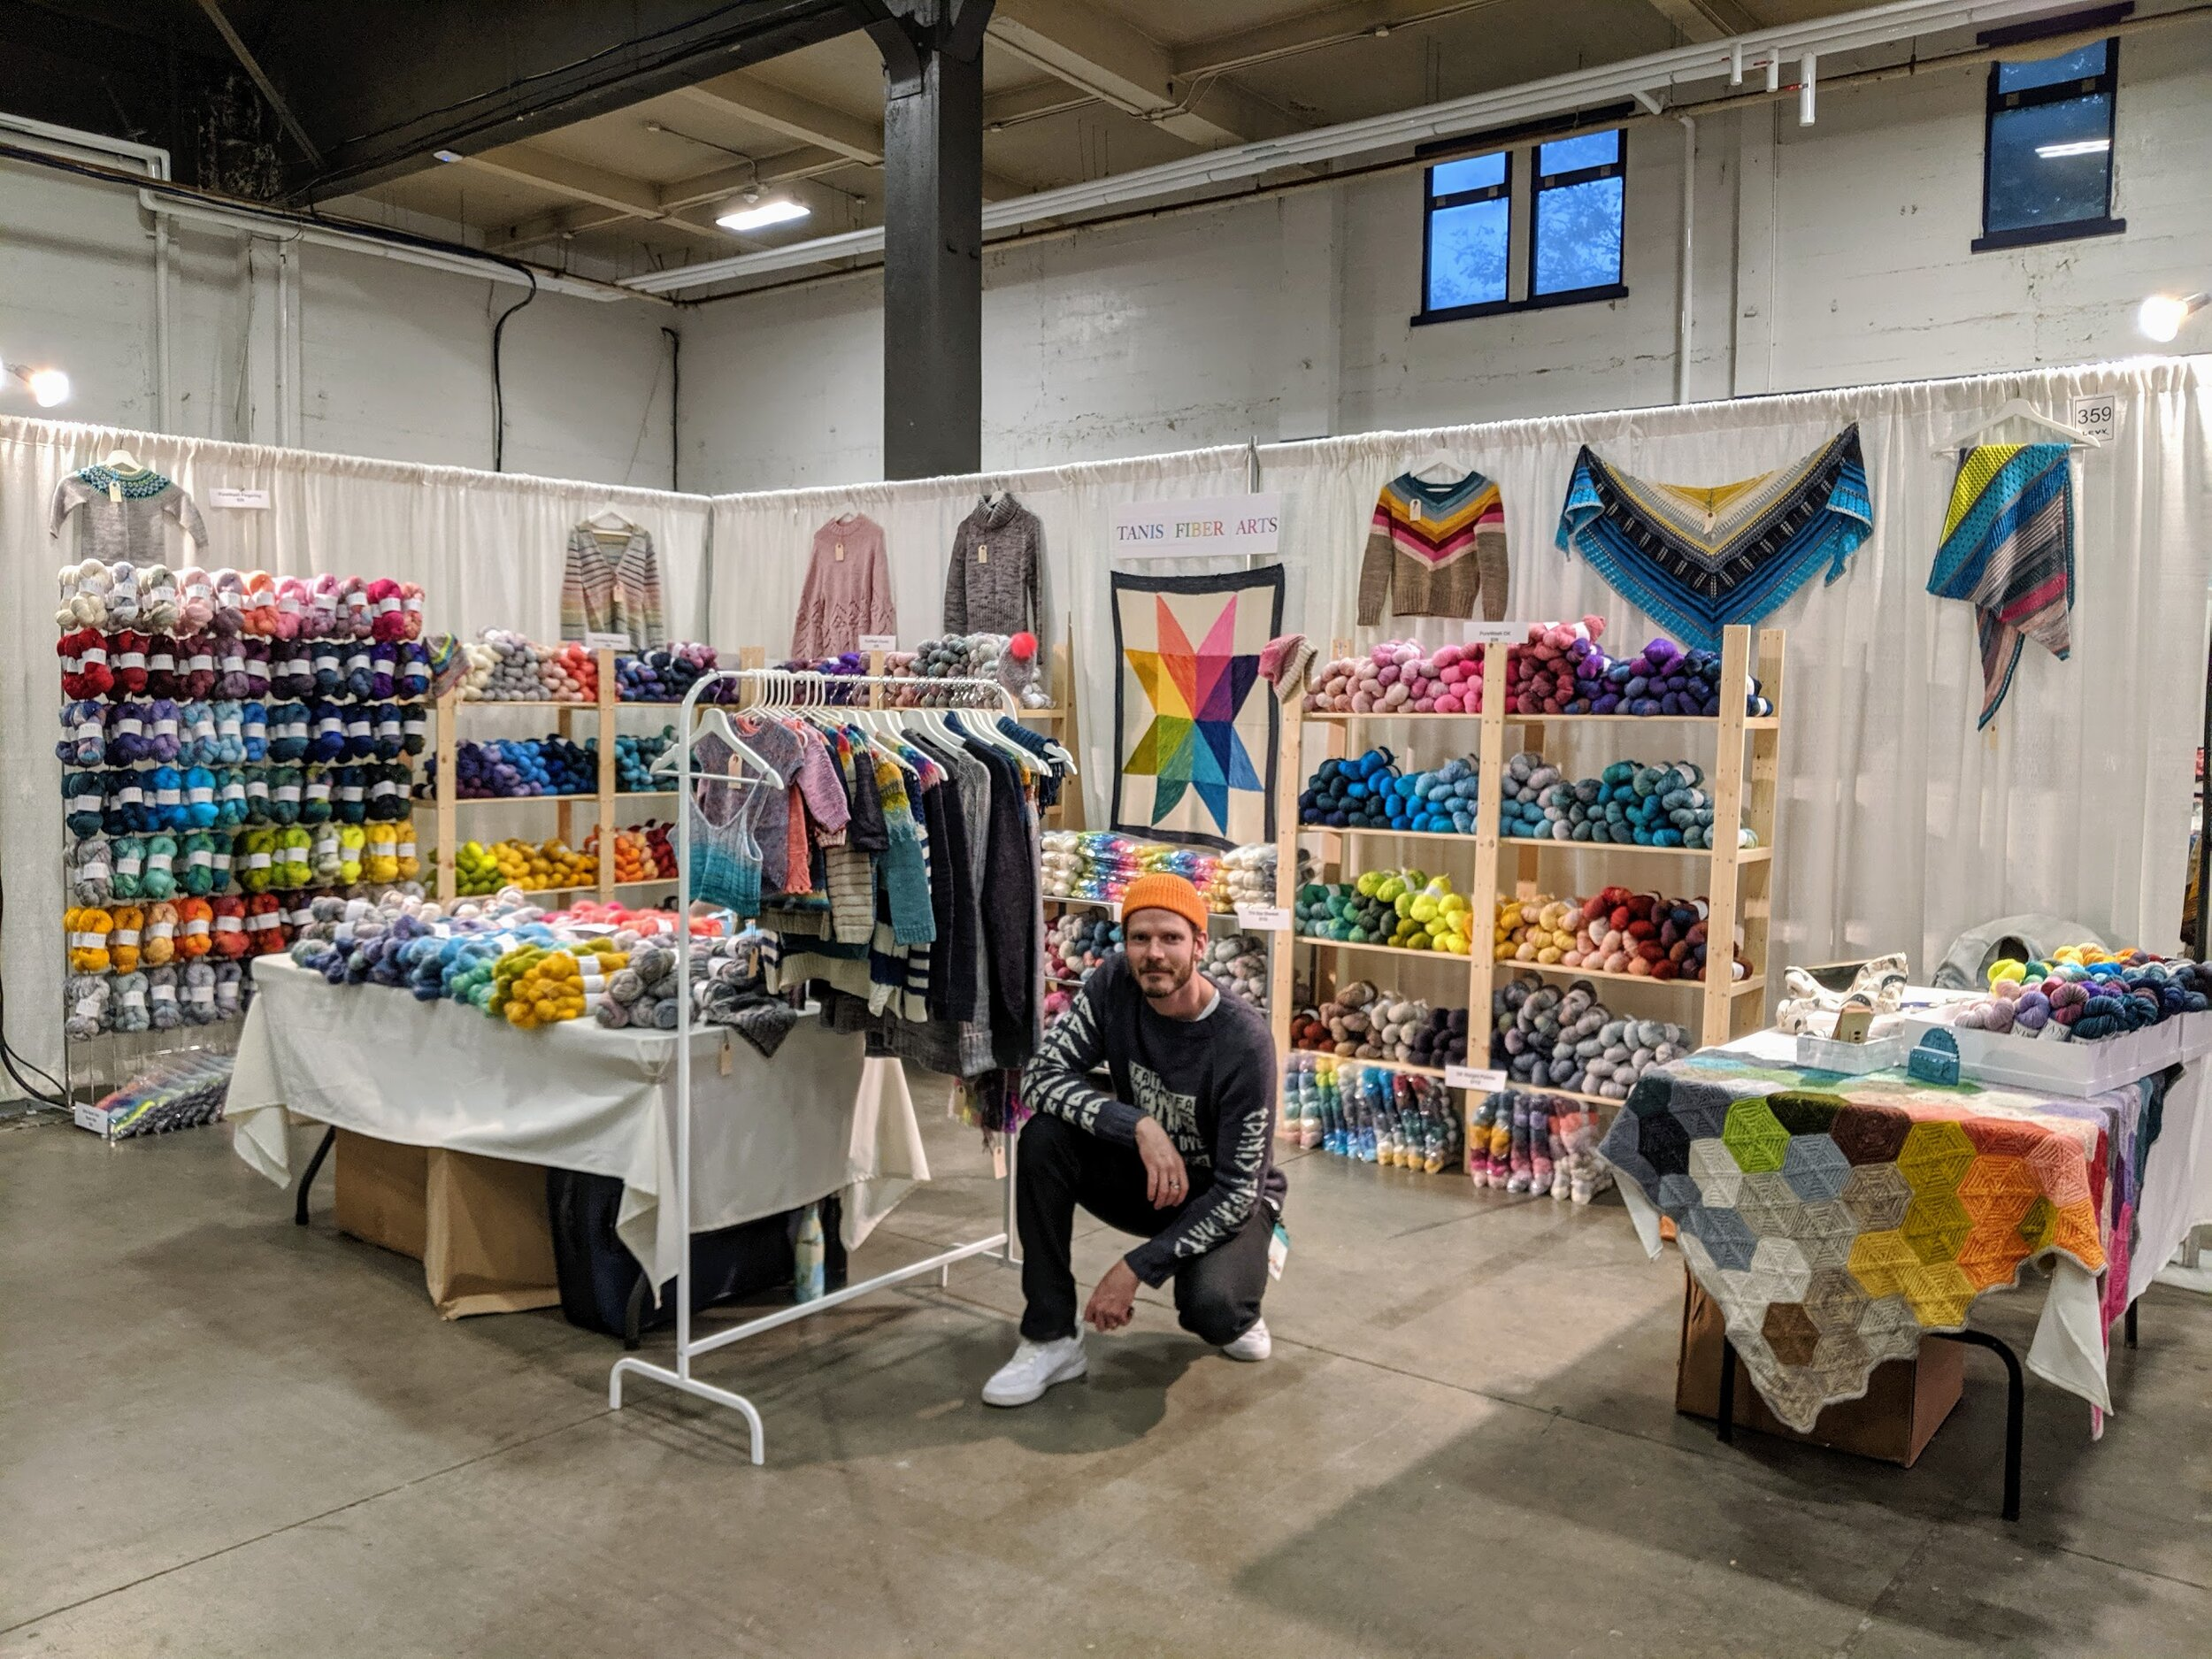 Chris workin' the booth! I love seeing all of our yarns displayed like this. It's a wee bit crowded but… SO MUCH COLOUR!